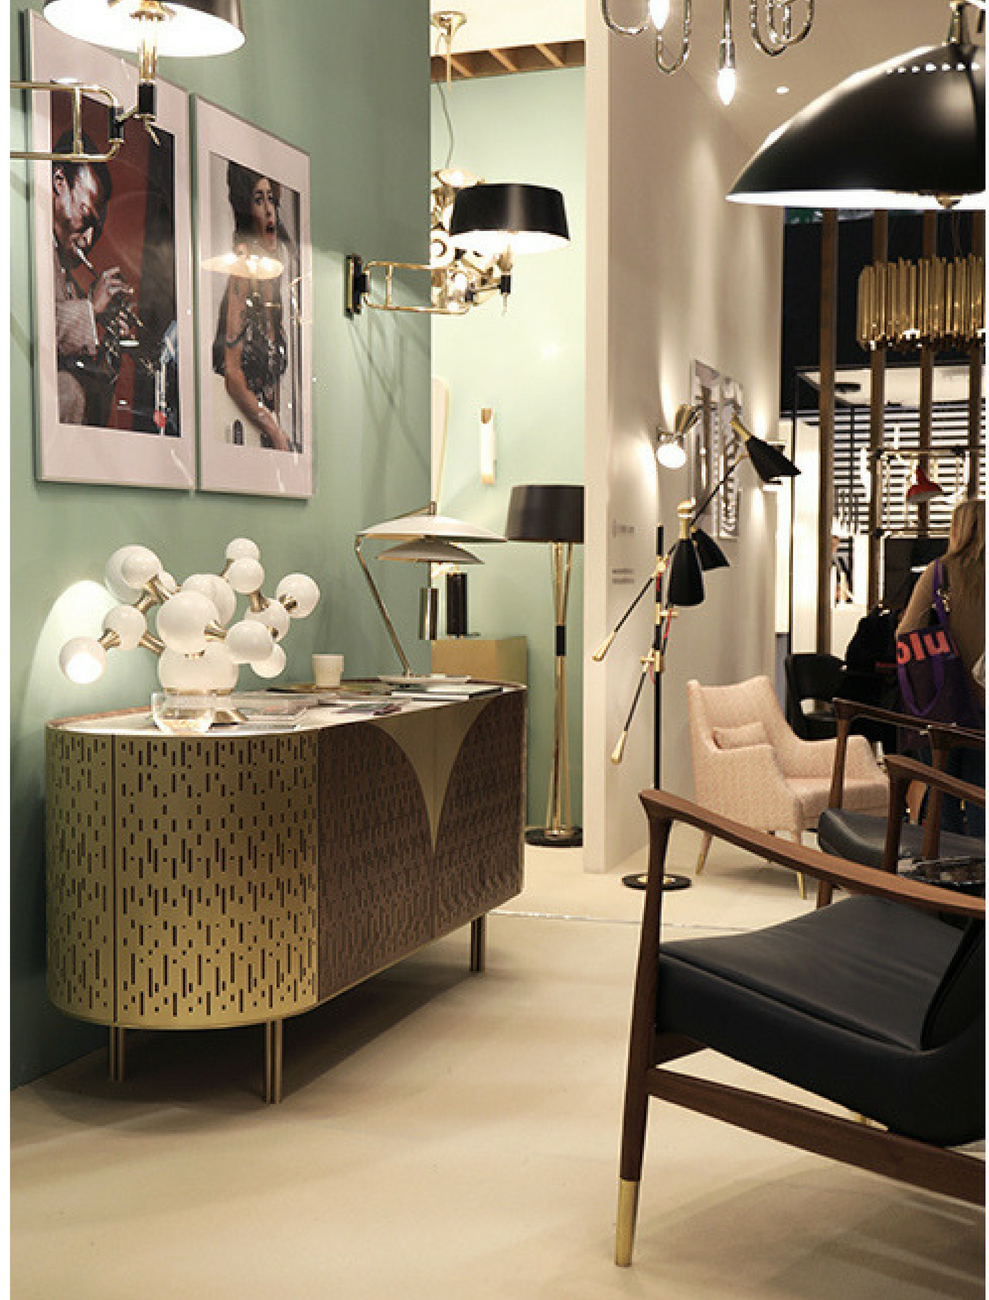 Maison et Objet And More _ A Throwback In Time! 6